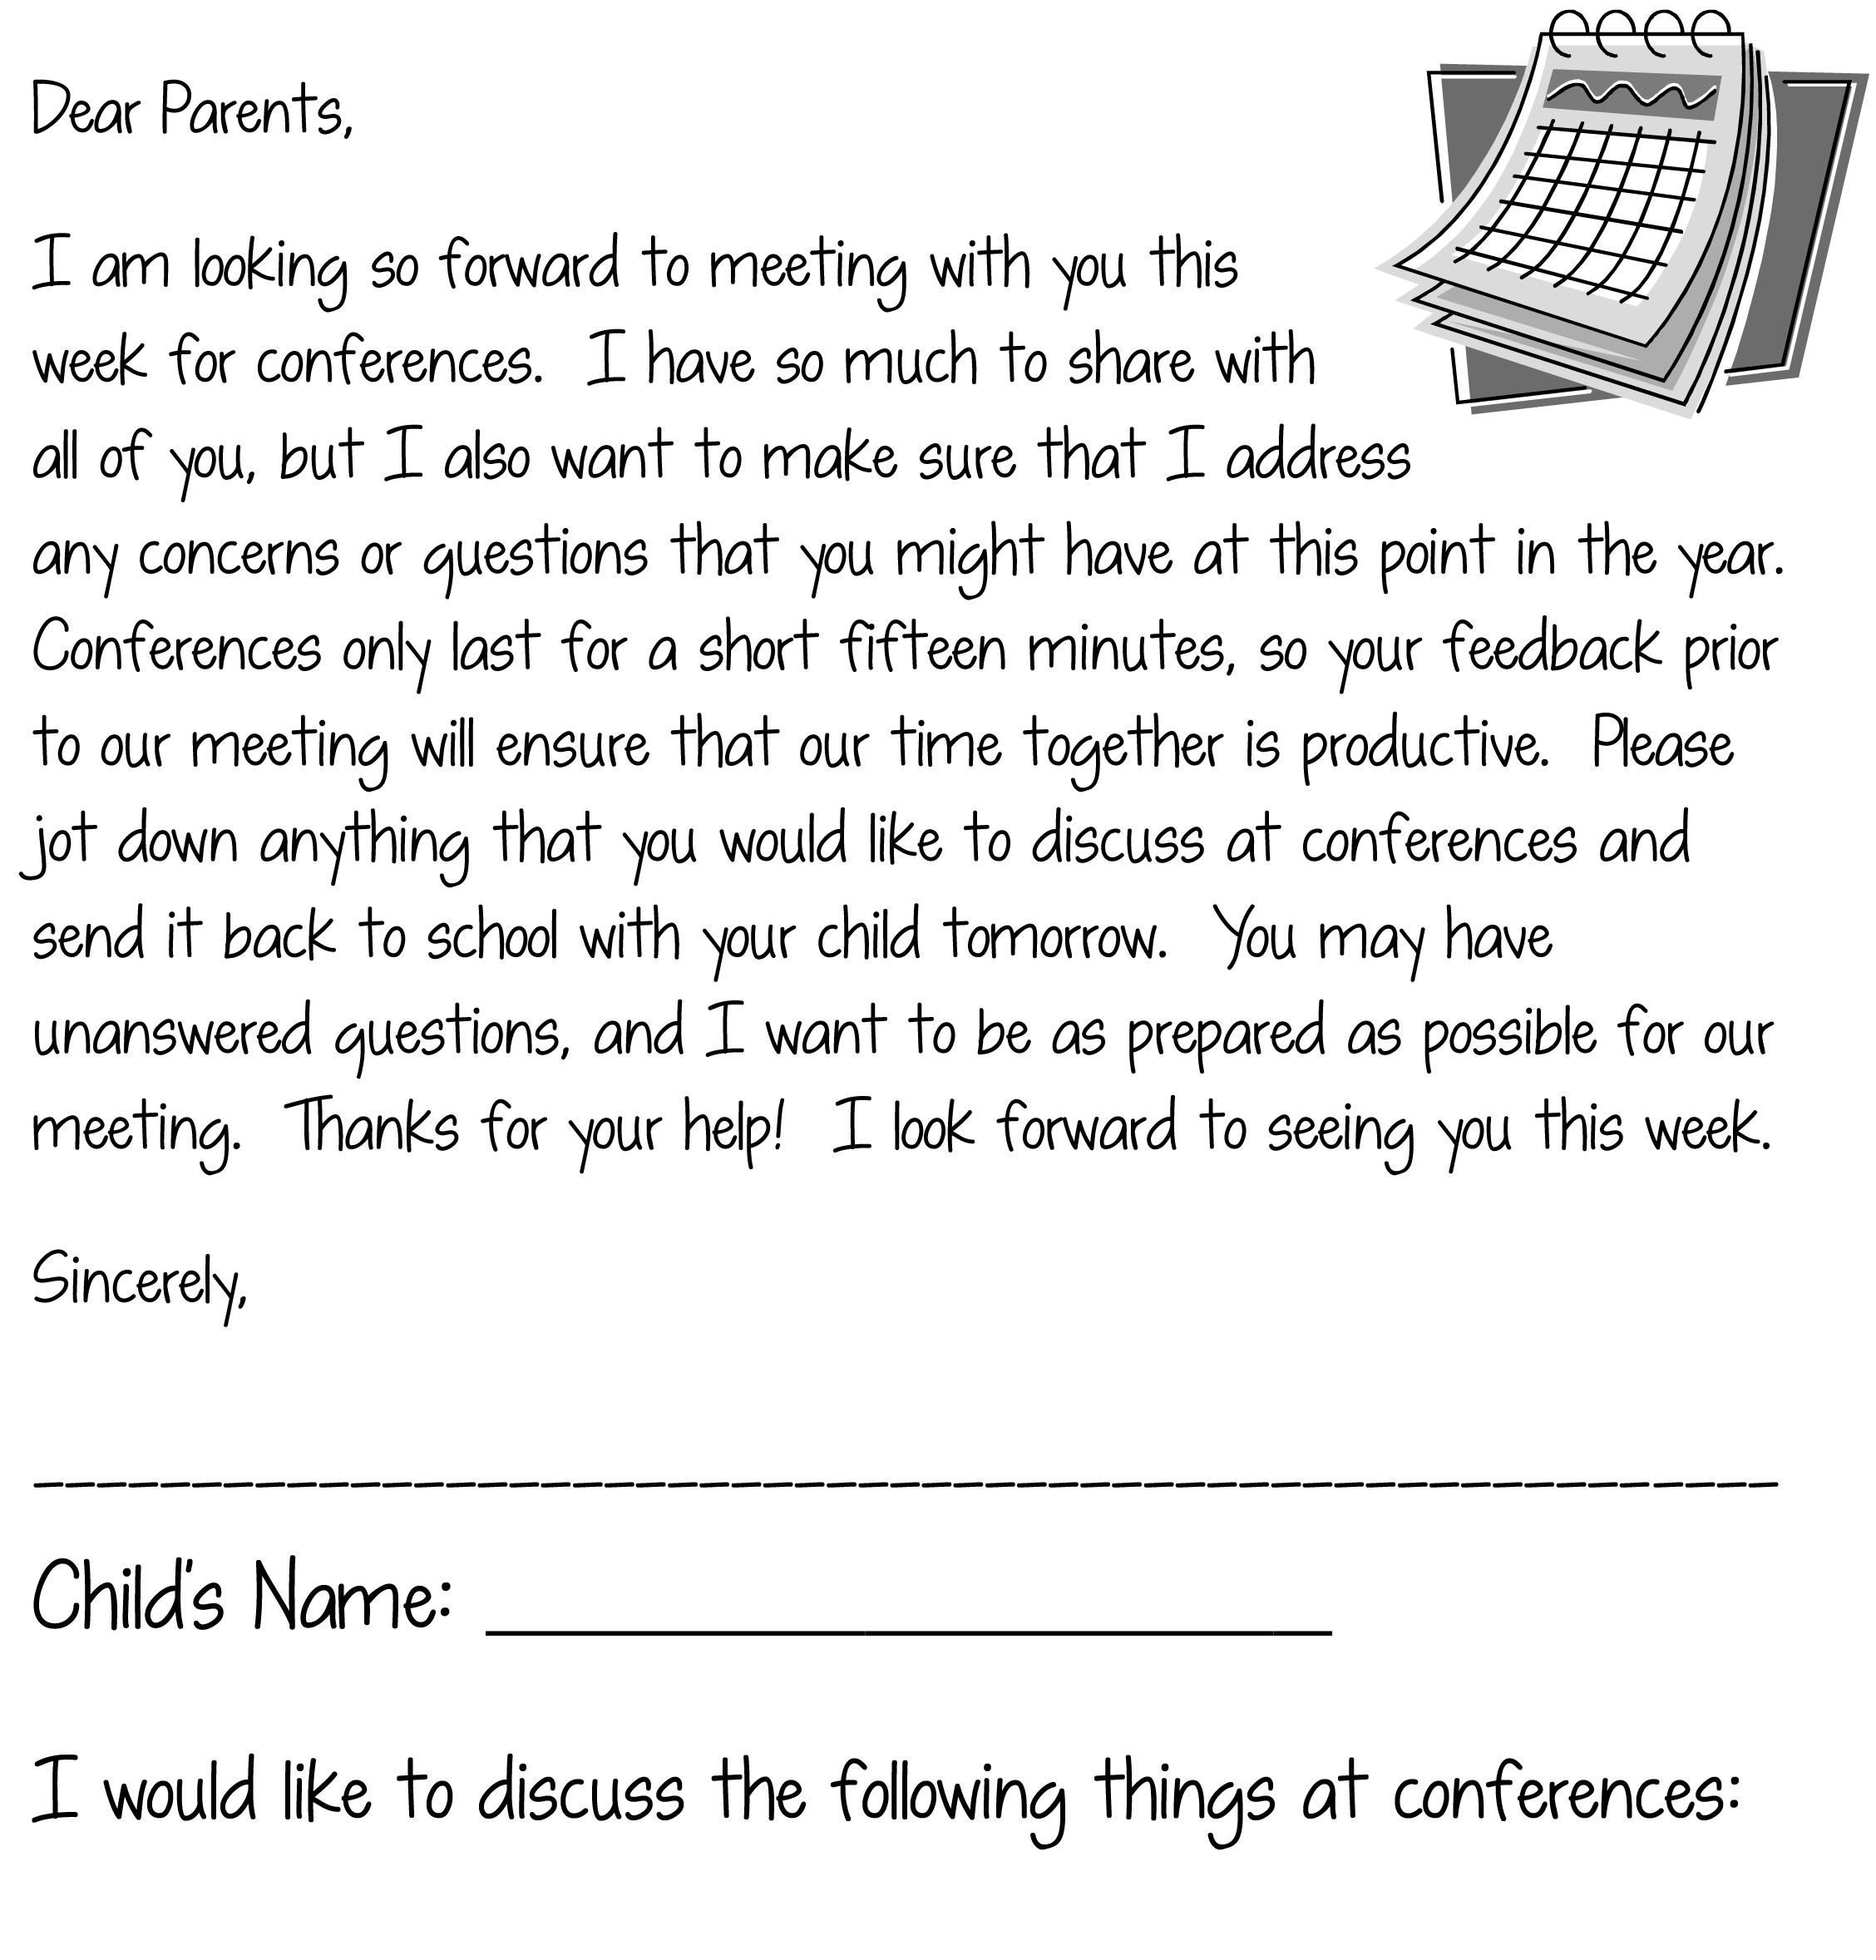 Sample Letter Format For Meeting Request. Parent Teacher Conference Letter  How to Make the Most of Conferences